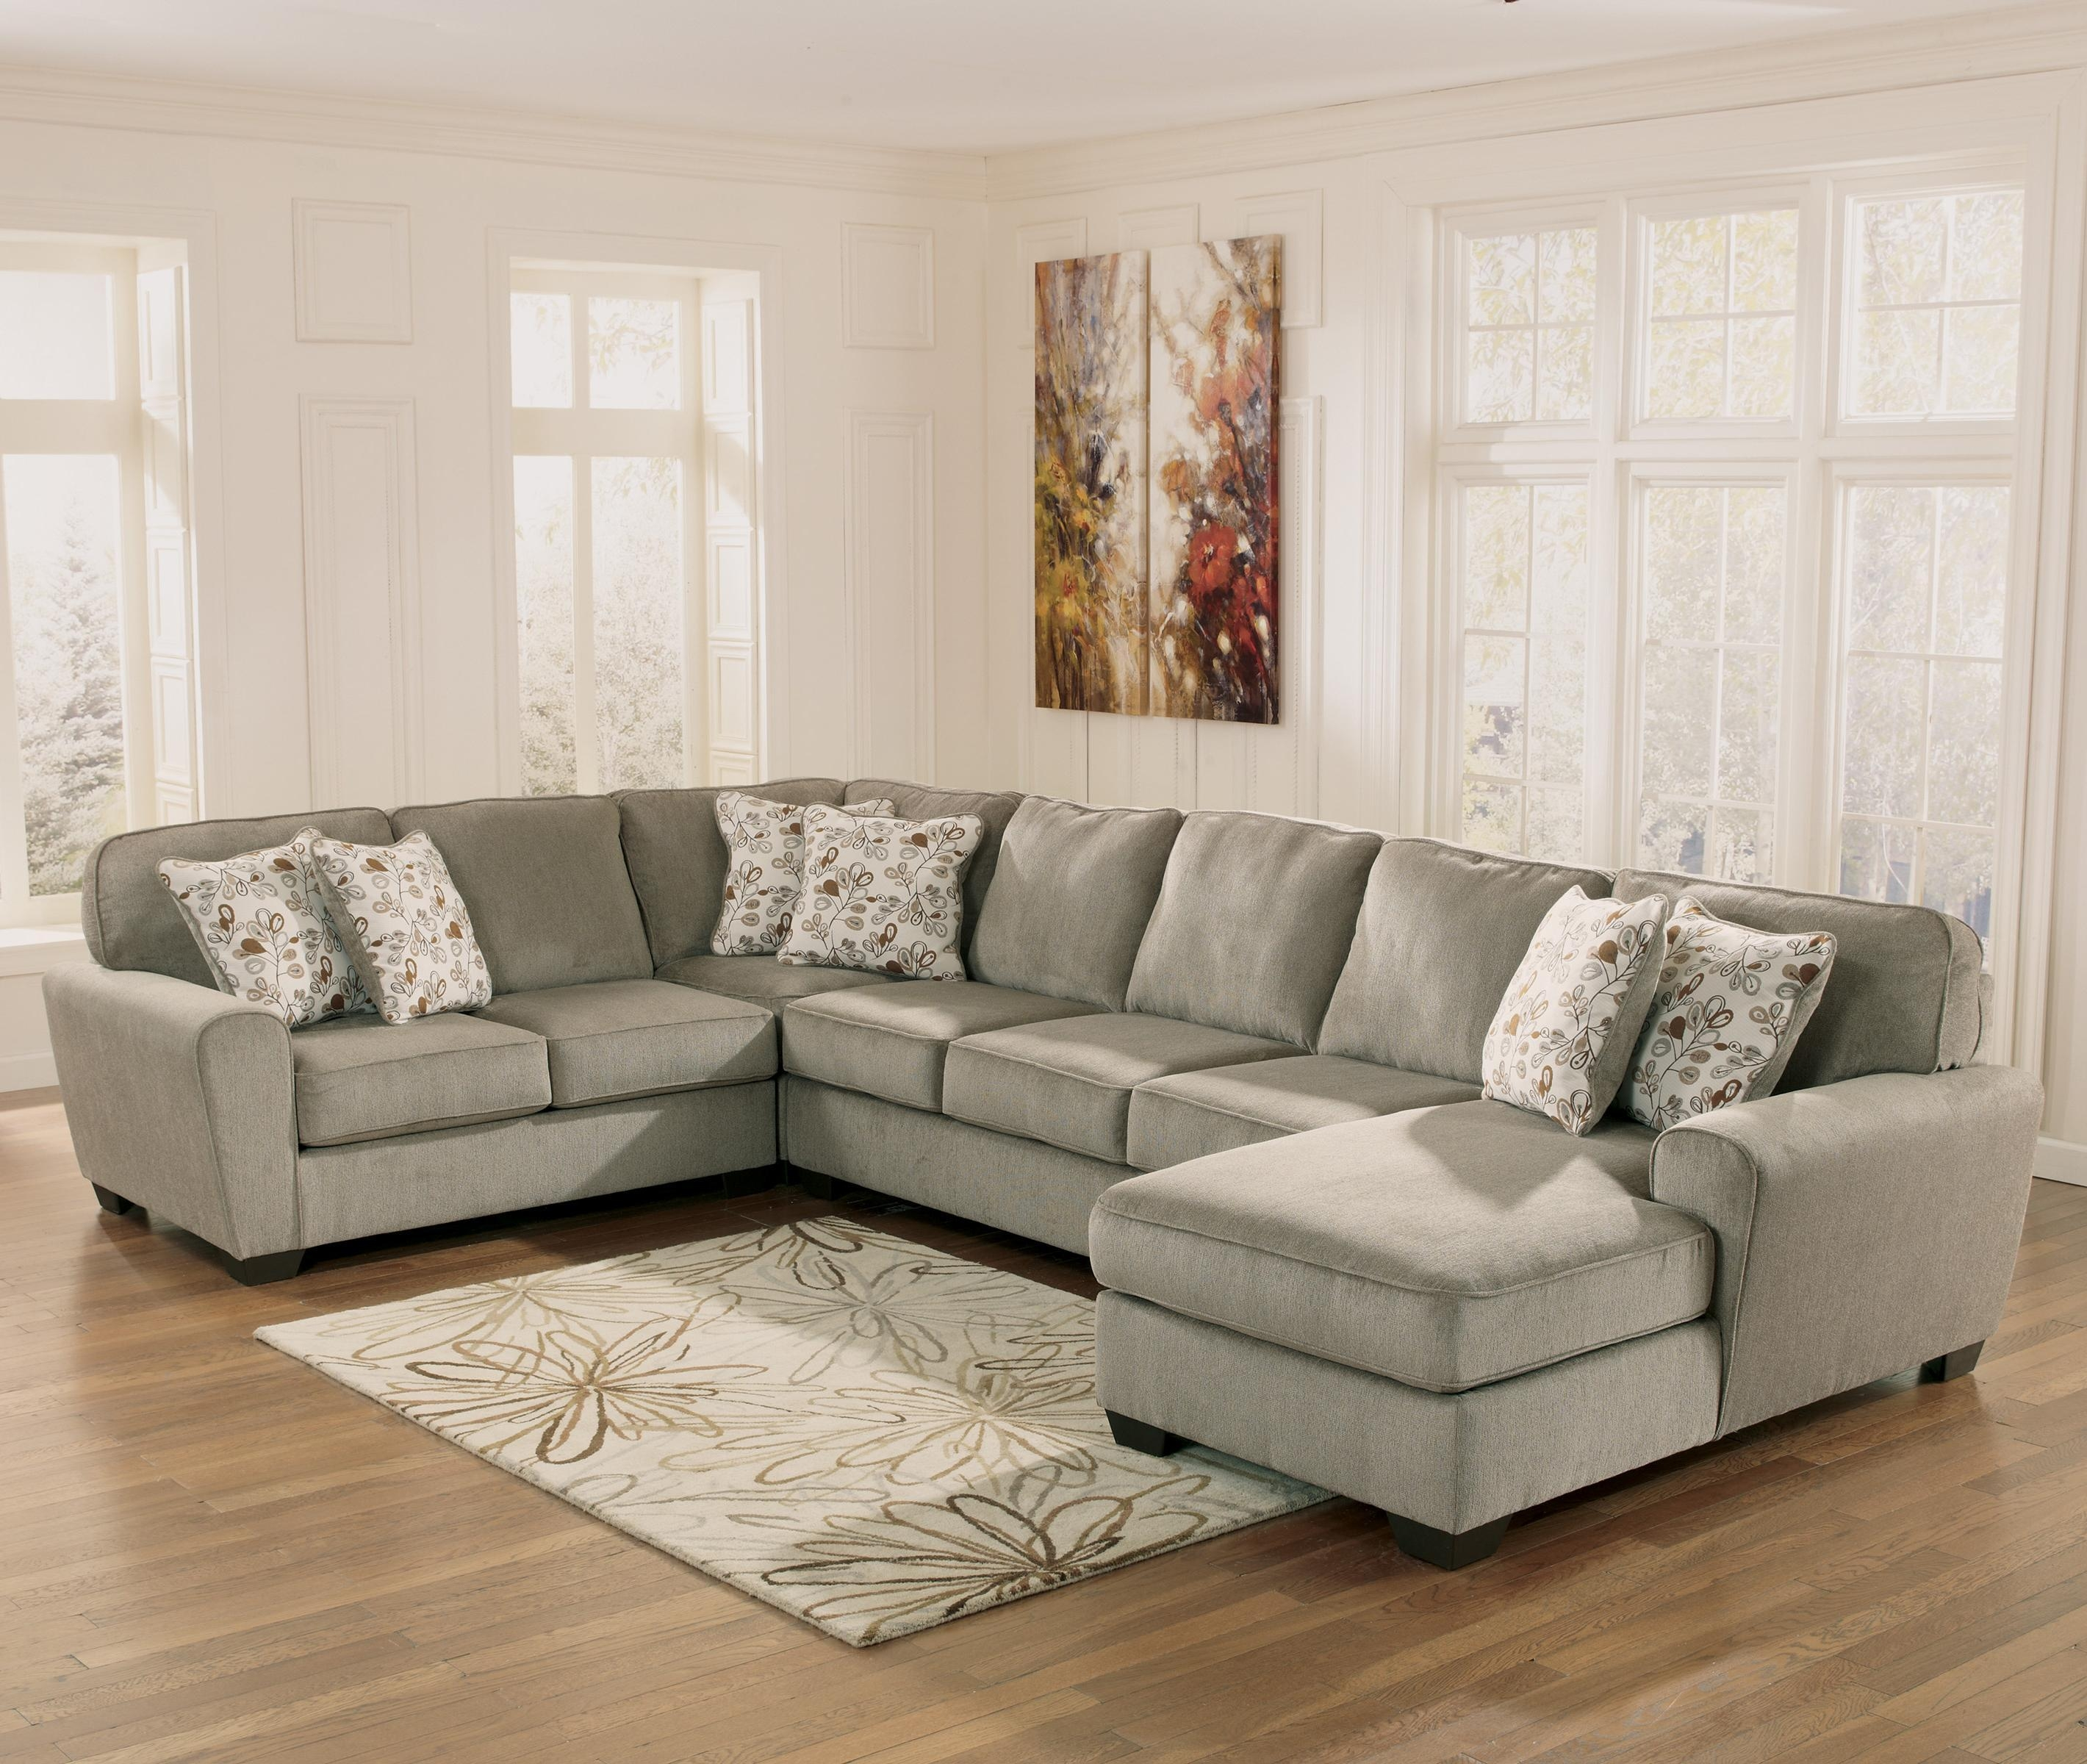 Ashley Furniture Patola Park – Patina 4 Piece Sectional With Right In Ashley Corduroy Sectional Sofas (View 3 of 20)